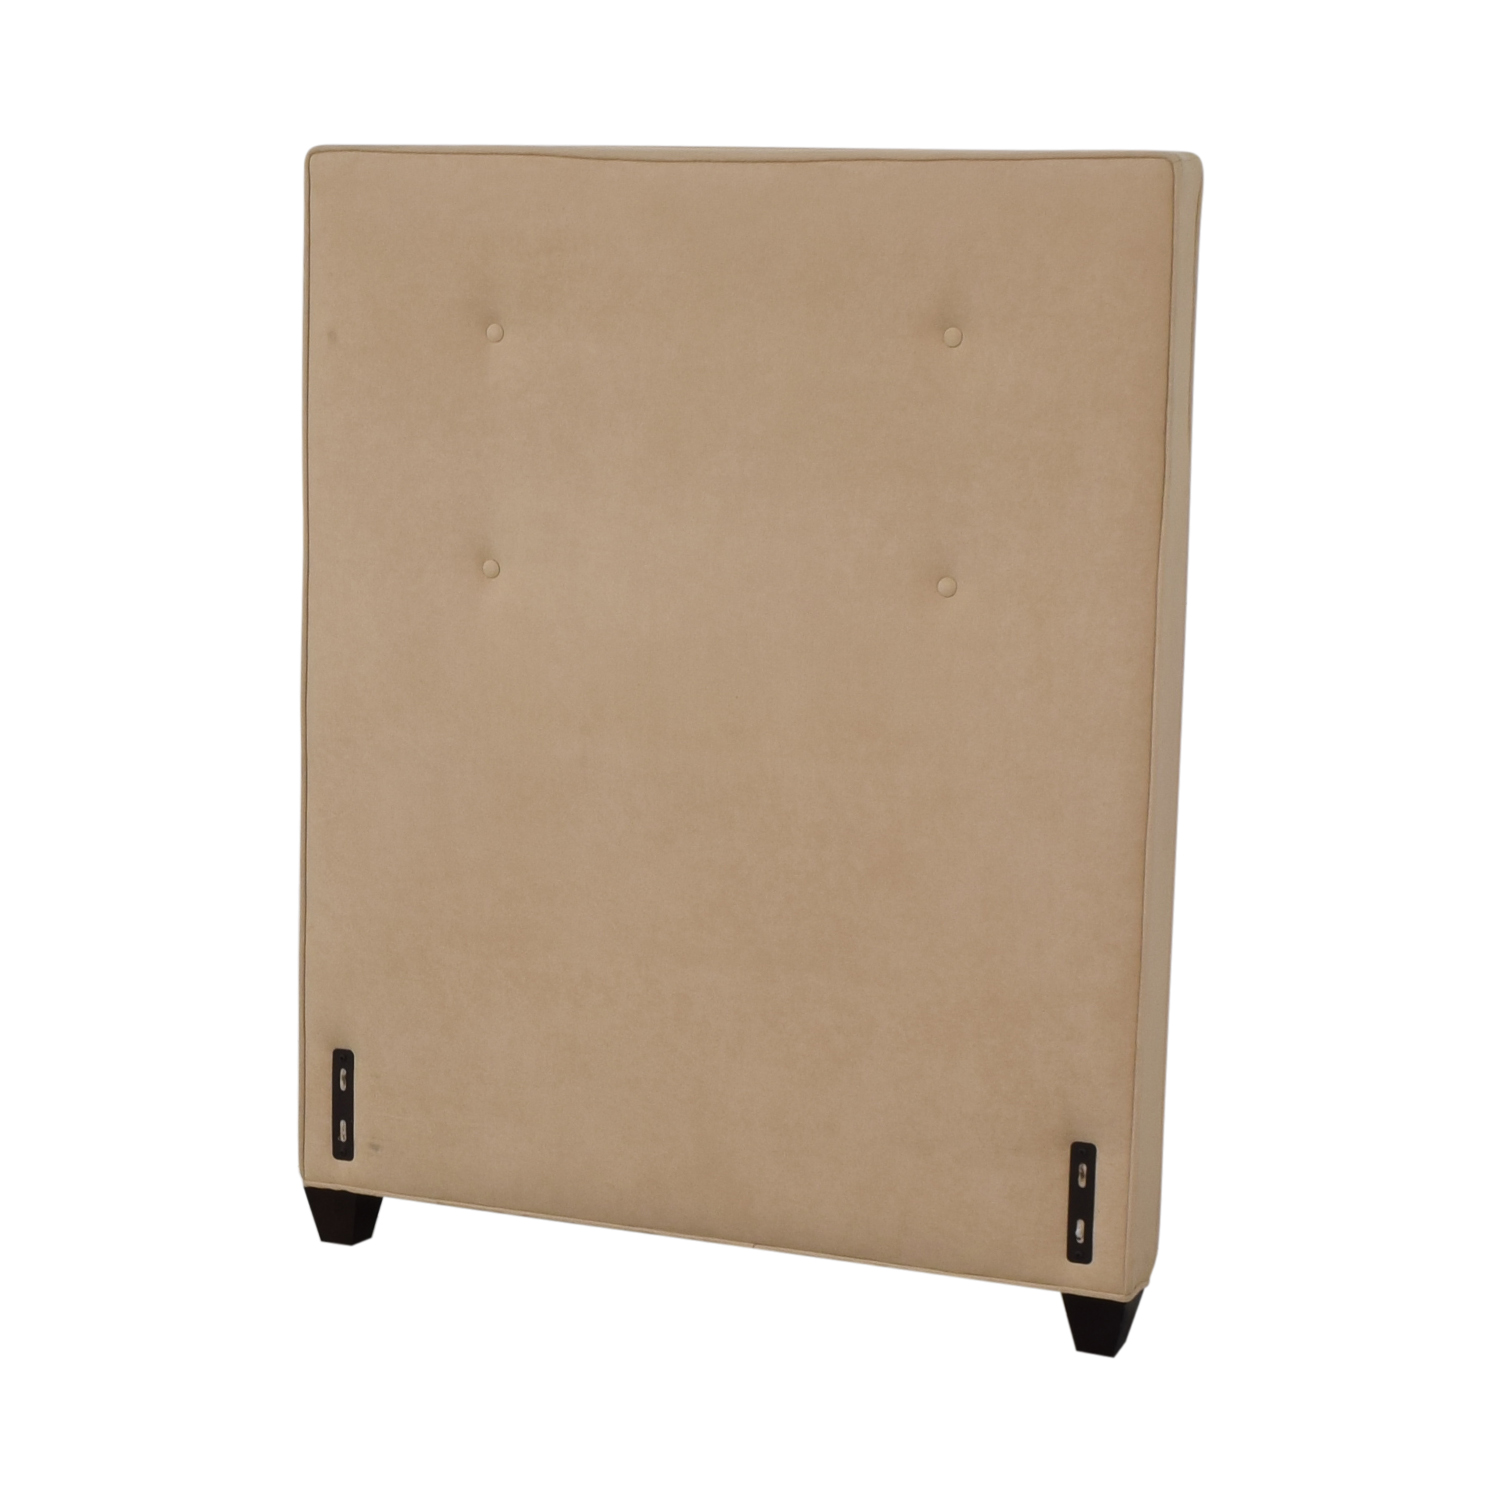 Crate & Barrel Crate & Barrel Beige Twin Headboard dimensions